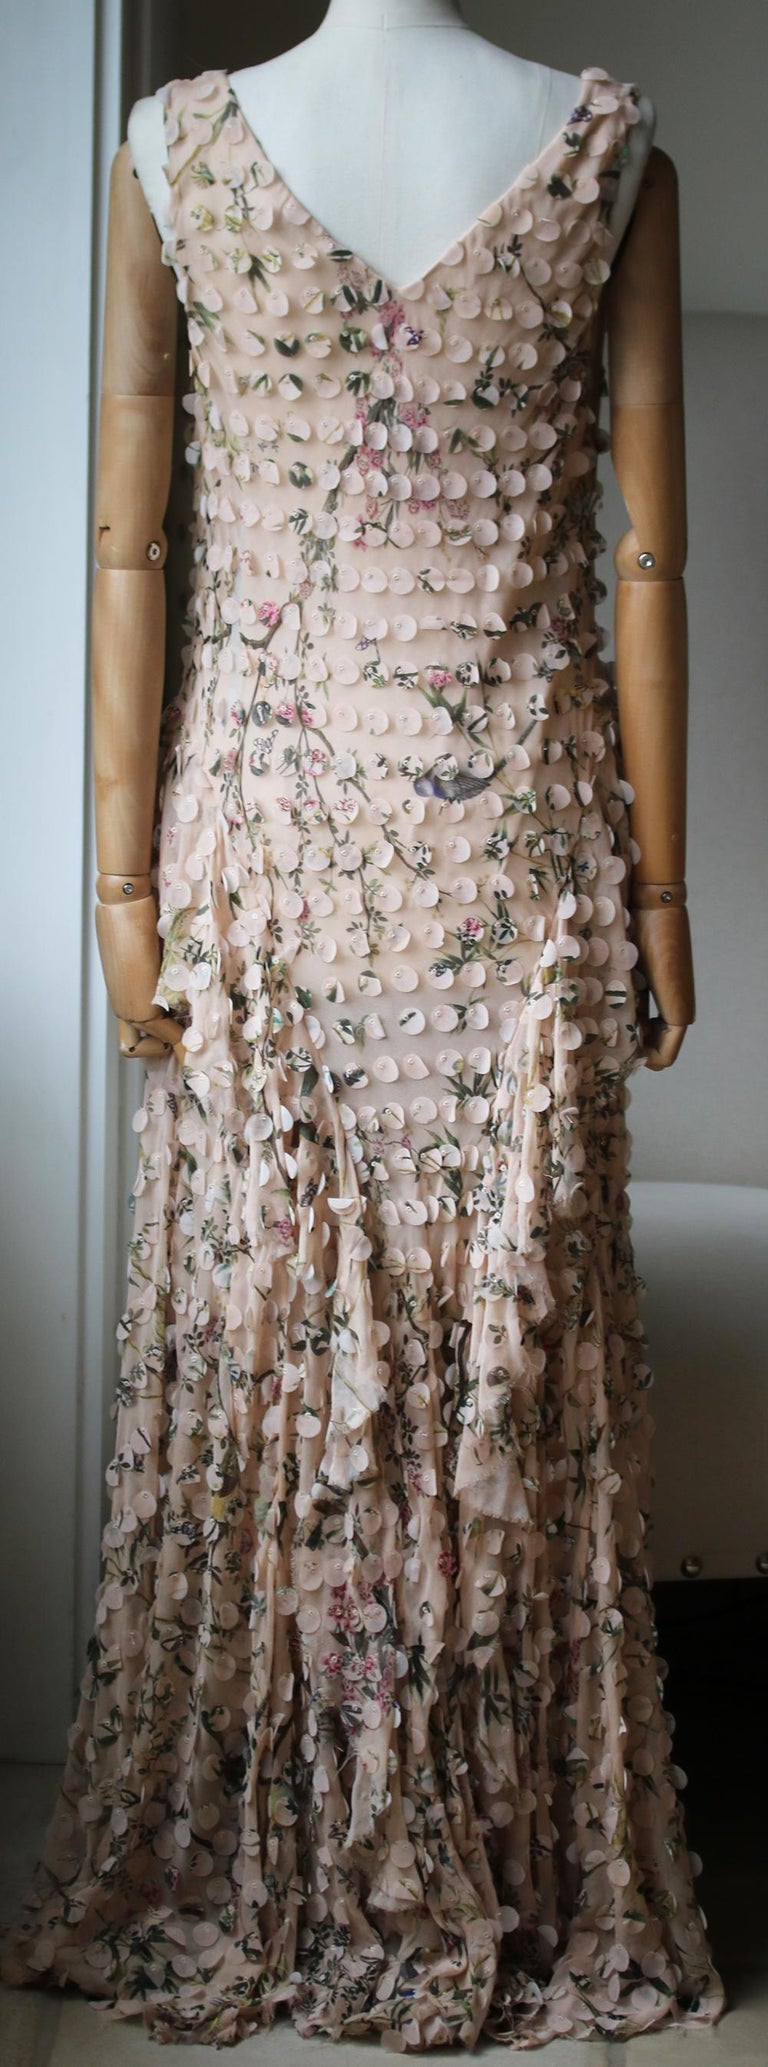 Zimmermann Maples Whisper Appliquéd Printed Silk Midi Dress In Excellent Condition For Sale In London, GB